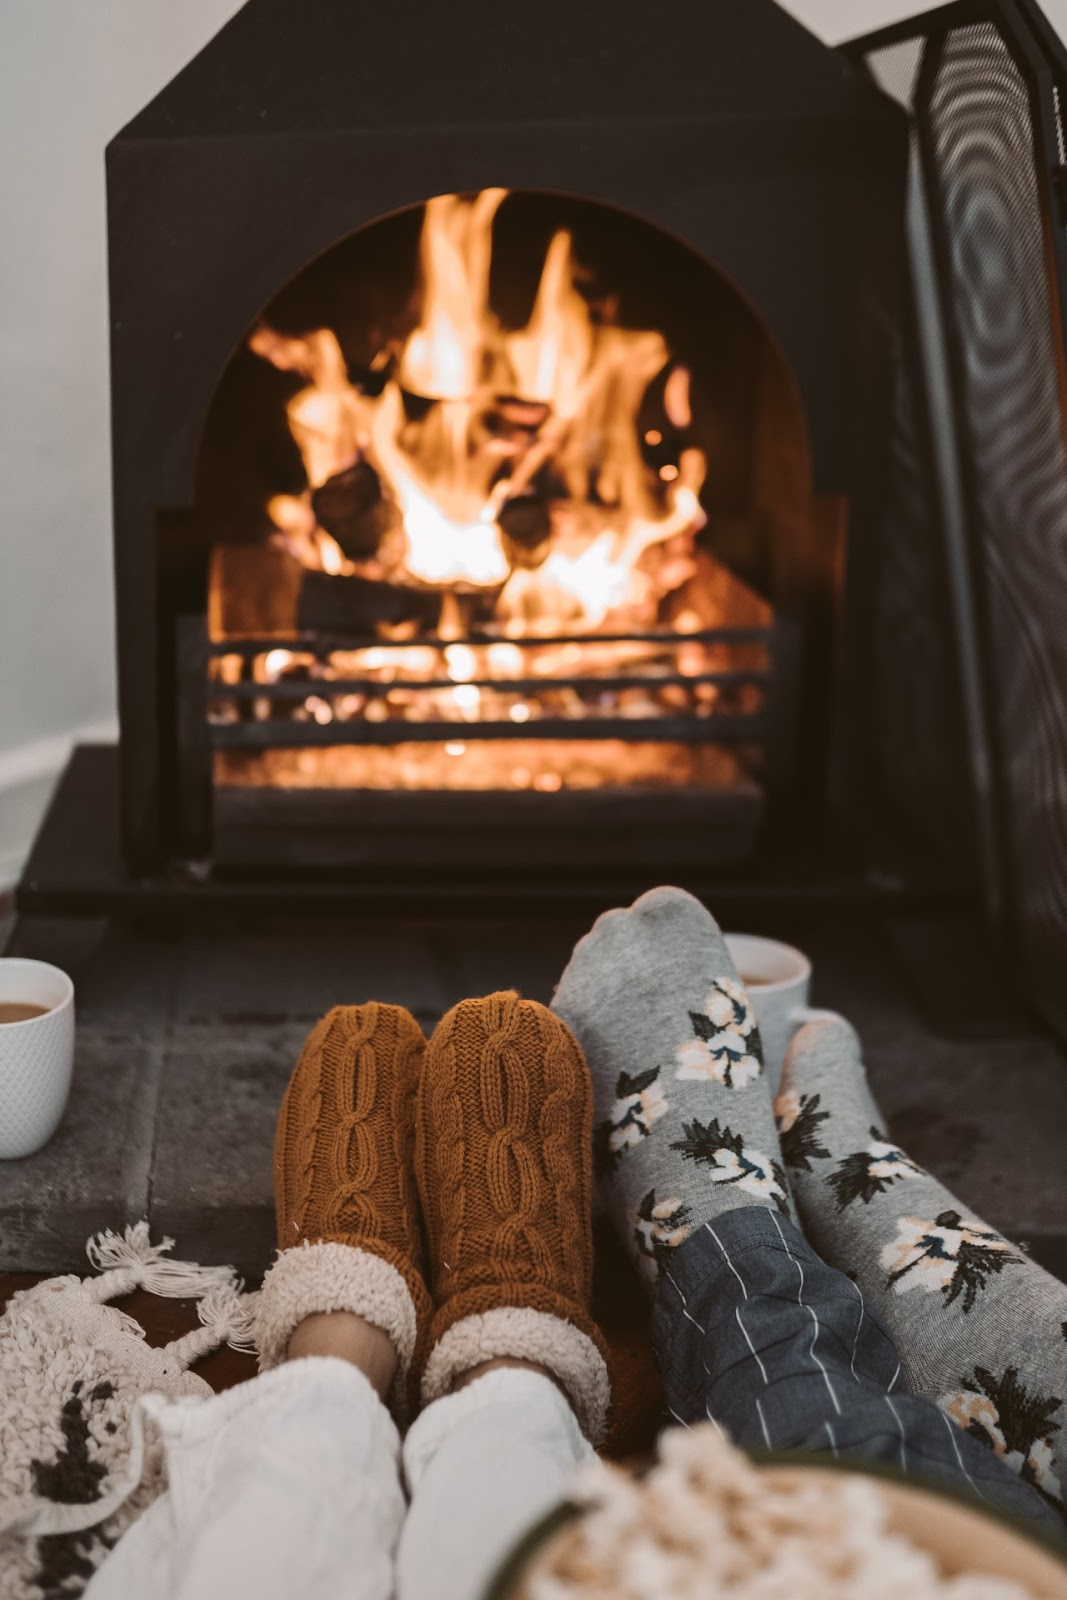 How to Prepare for a Winter Home Emergency